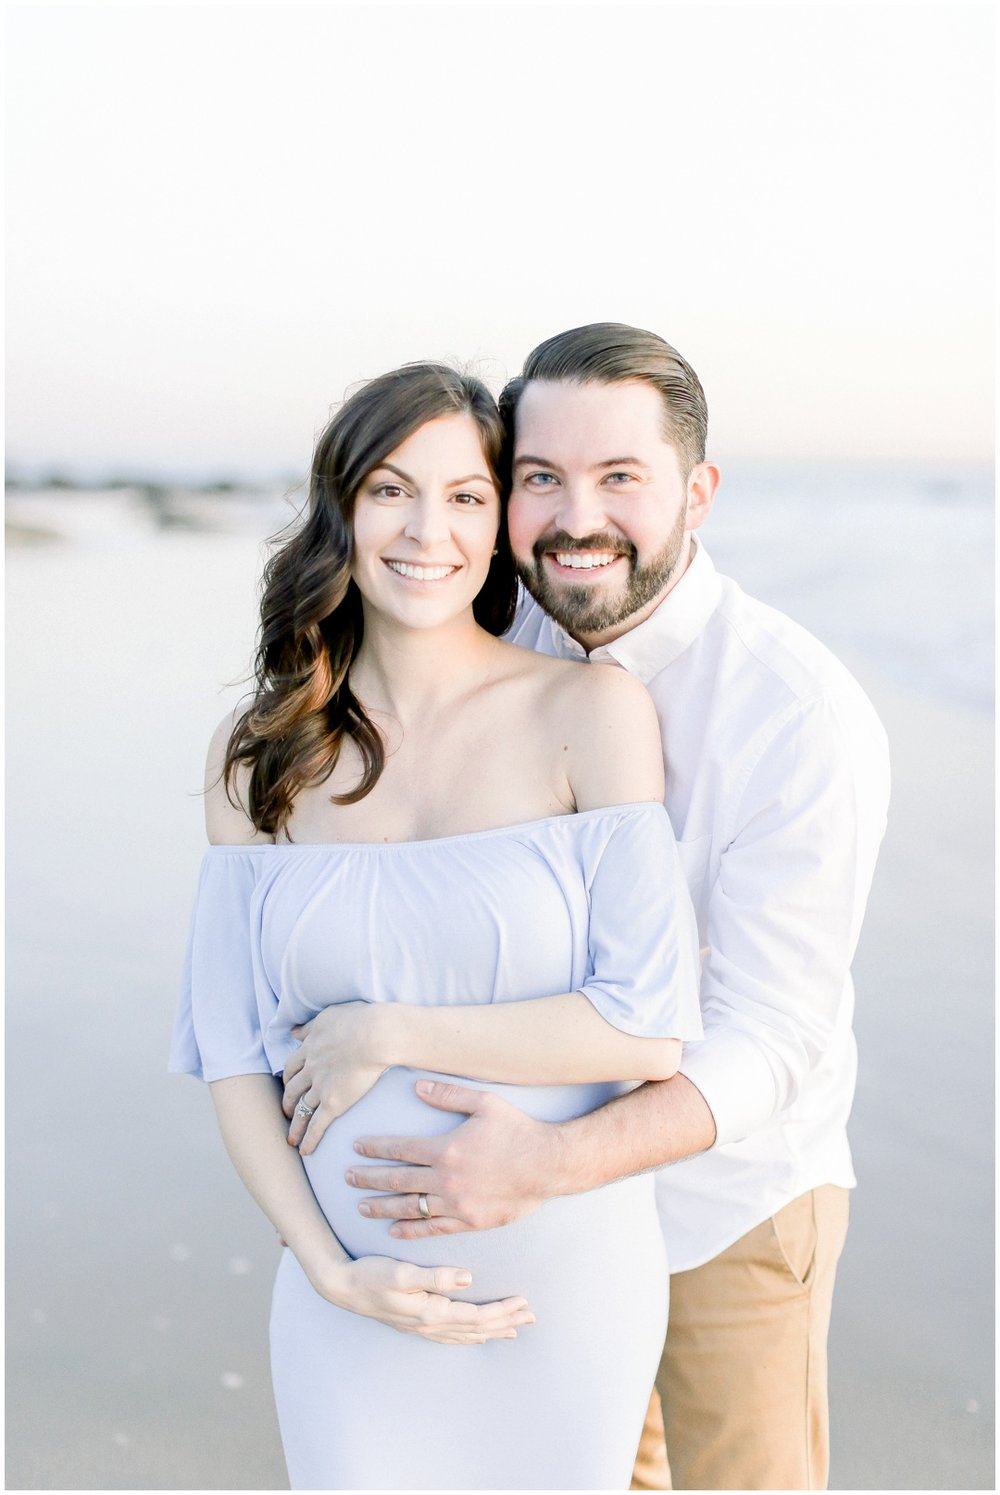 Newport_Beach_Newborn_Photographer_Newport_Beach_Maternity_Photographer_Orange_County_Family_Photographer_Cori_Kleckner_Photography_Huntington_Beach_Photographer_Shelby_Kemper_Family_Jared_Kemper__2946.jpg